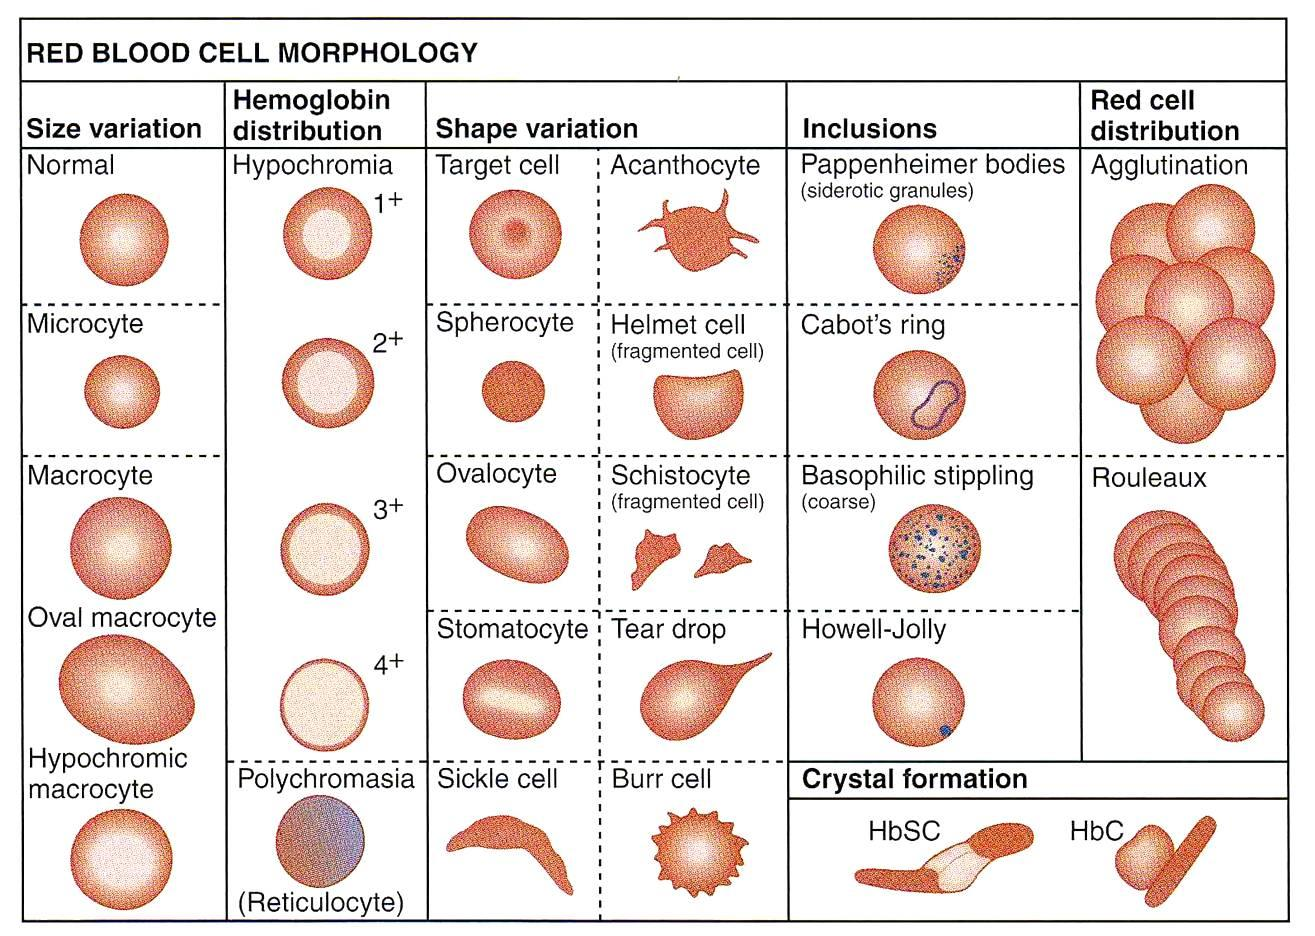 Dog Anemia Red Blood Cell Morphology